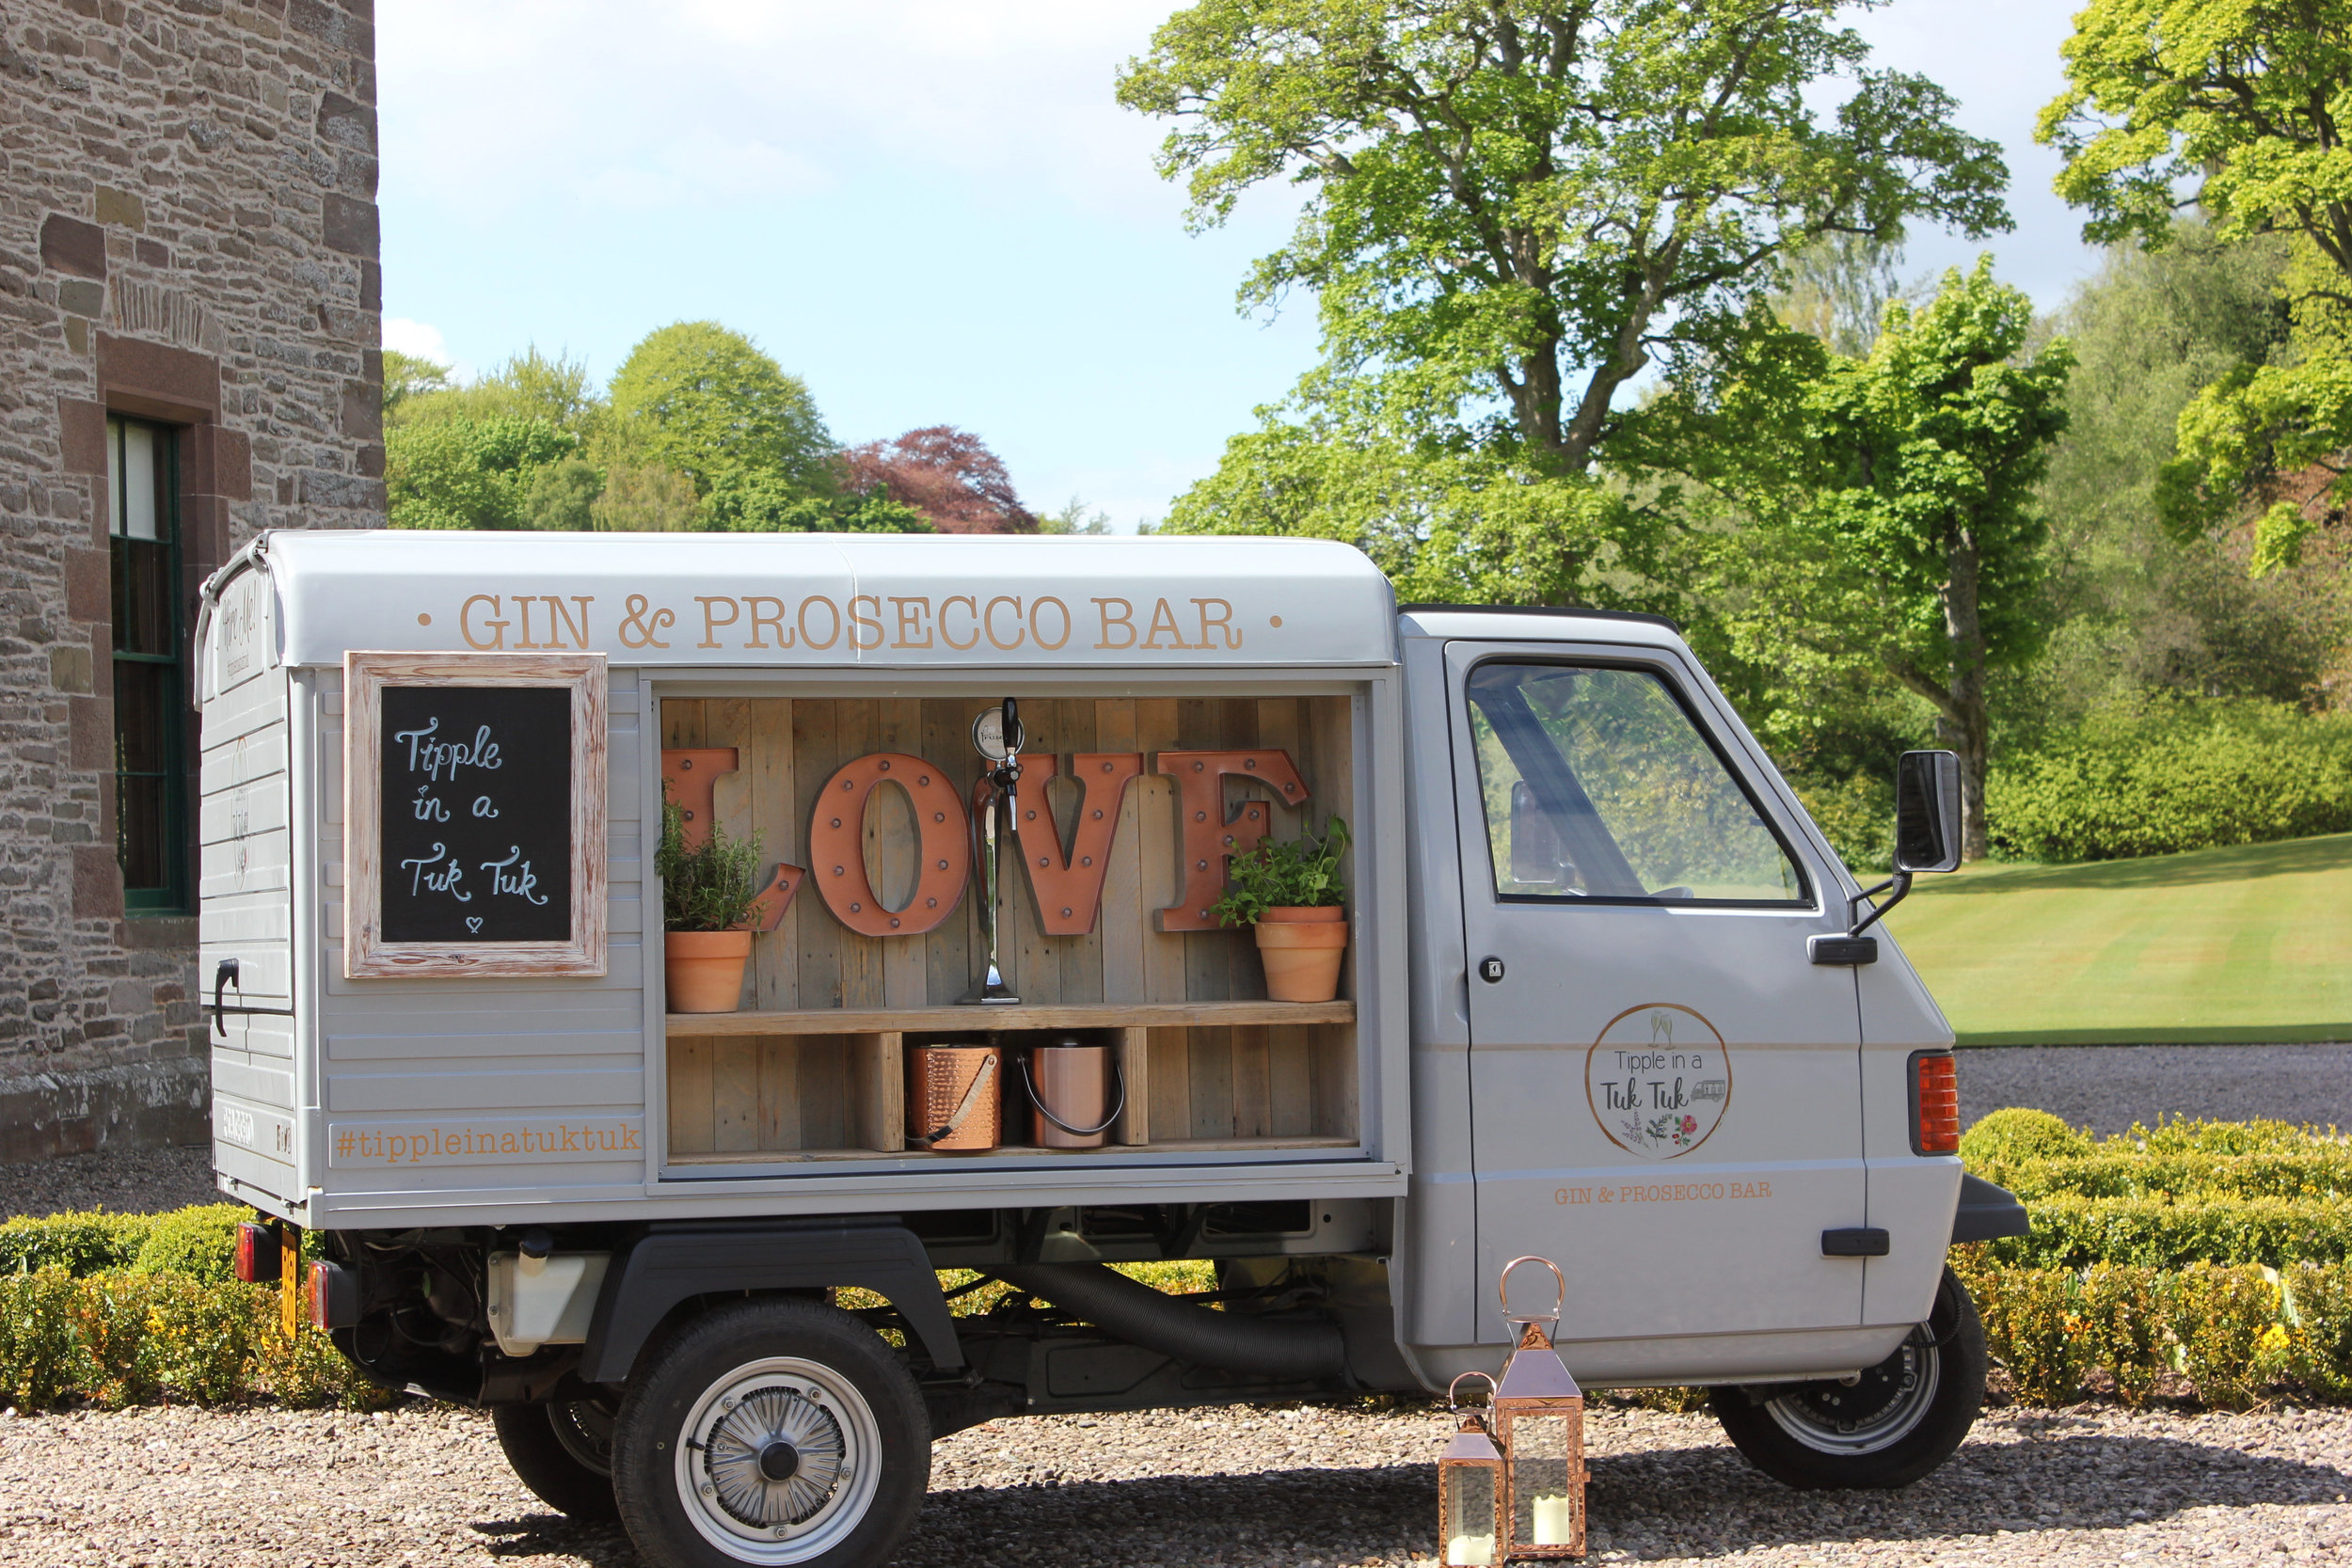 Mini Barrel of Bubbly package £350 - Our gin & Prosecco van available for hire